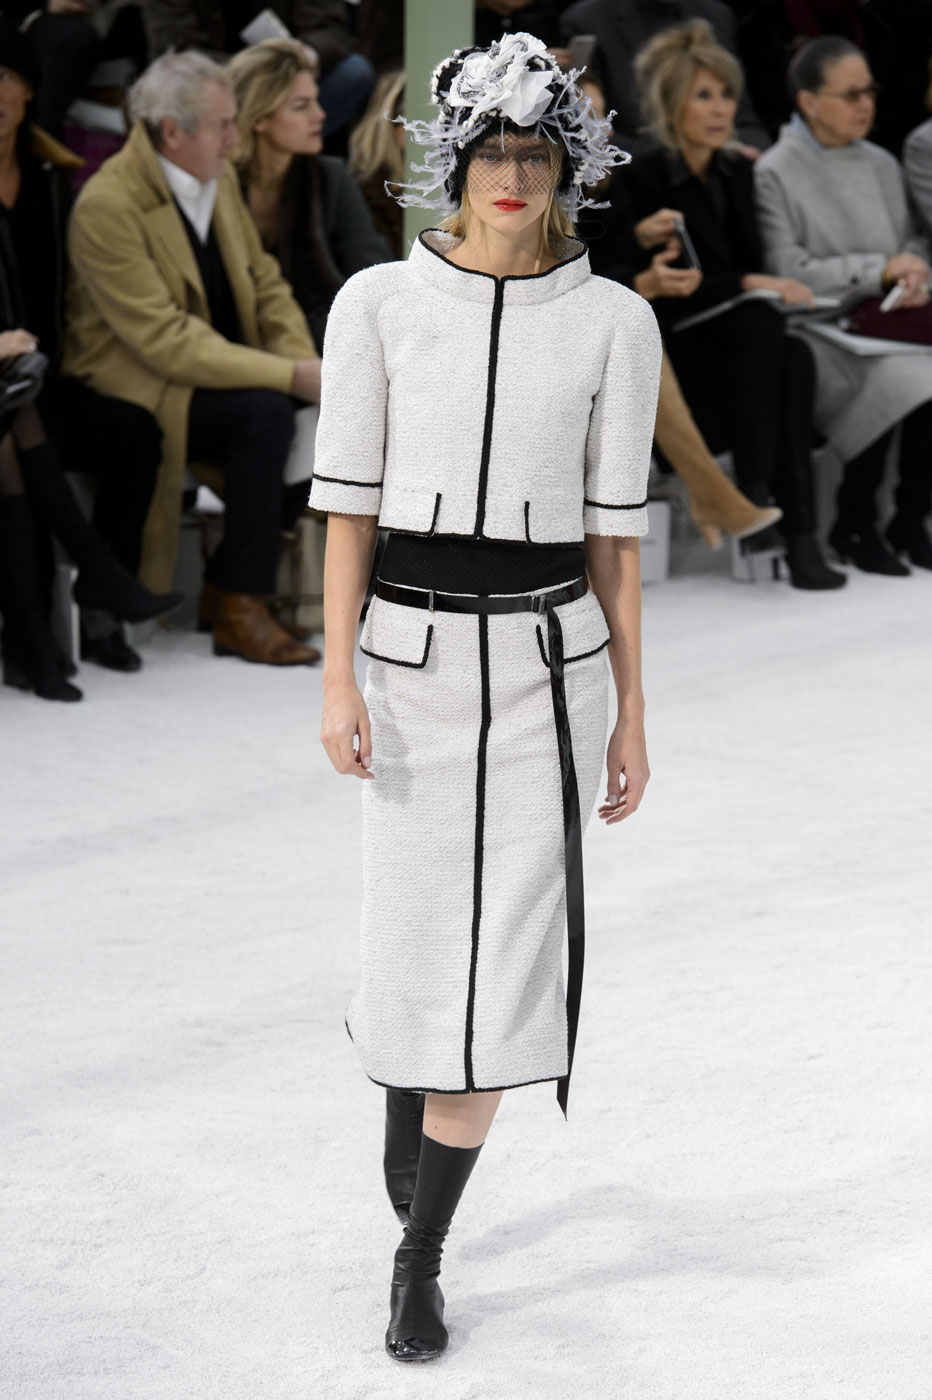 Chanel-fashion-runway-show-haute-couture-paris-spring-summer-2015-the-impression-029